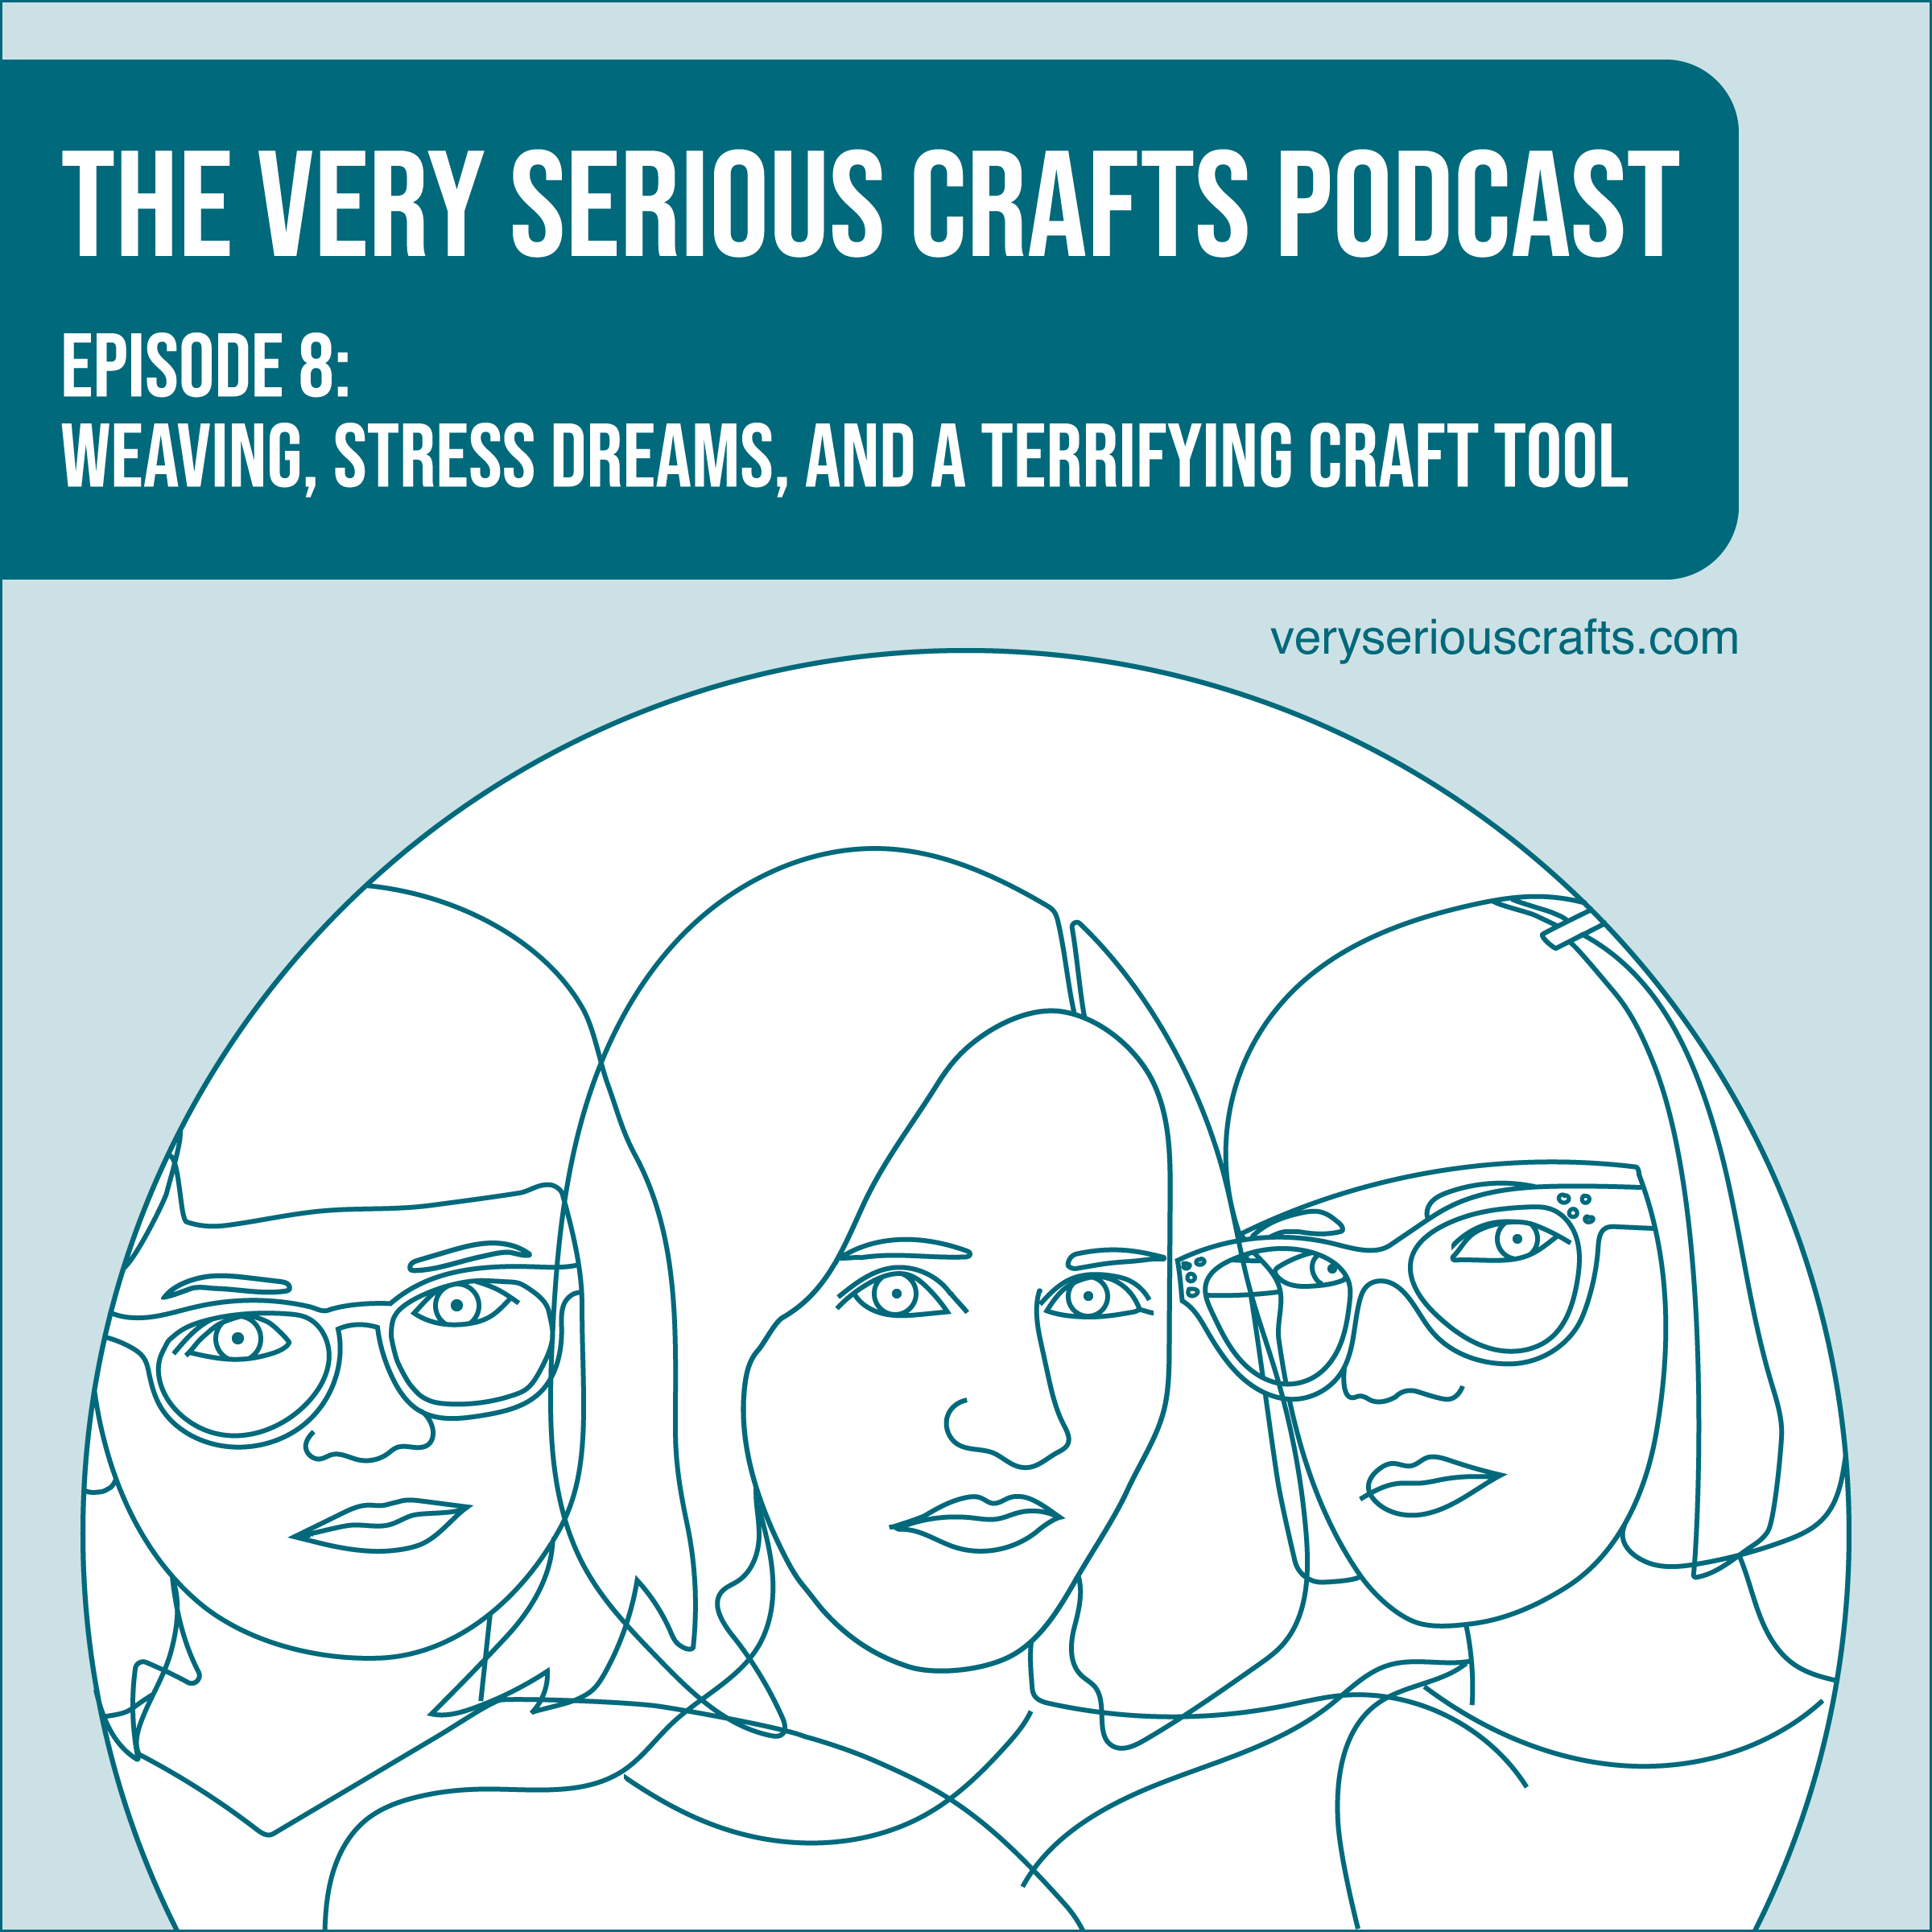 S1E08: Weaving, Stress Dreams, and a Terrifying Craft Tool